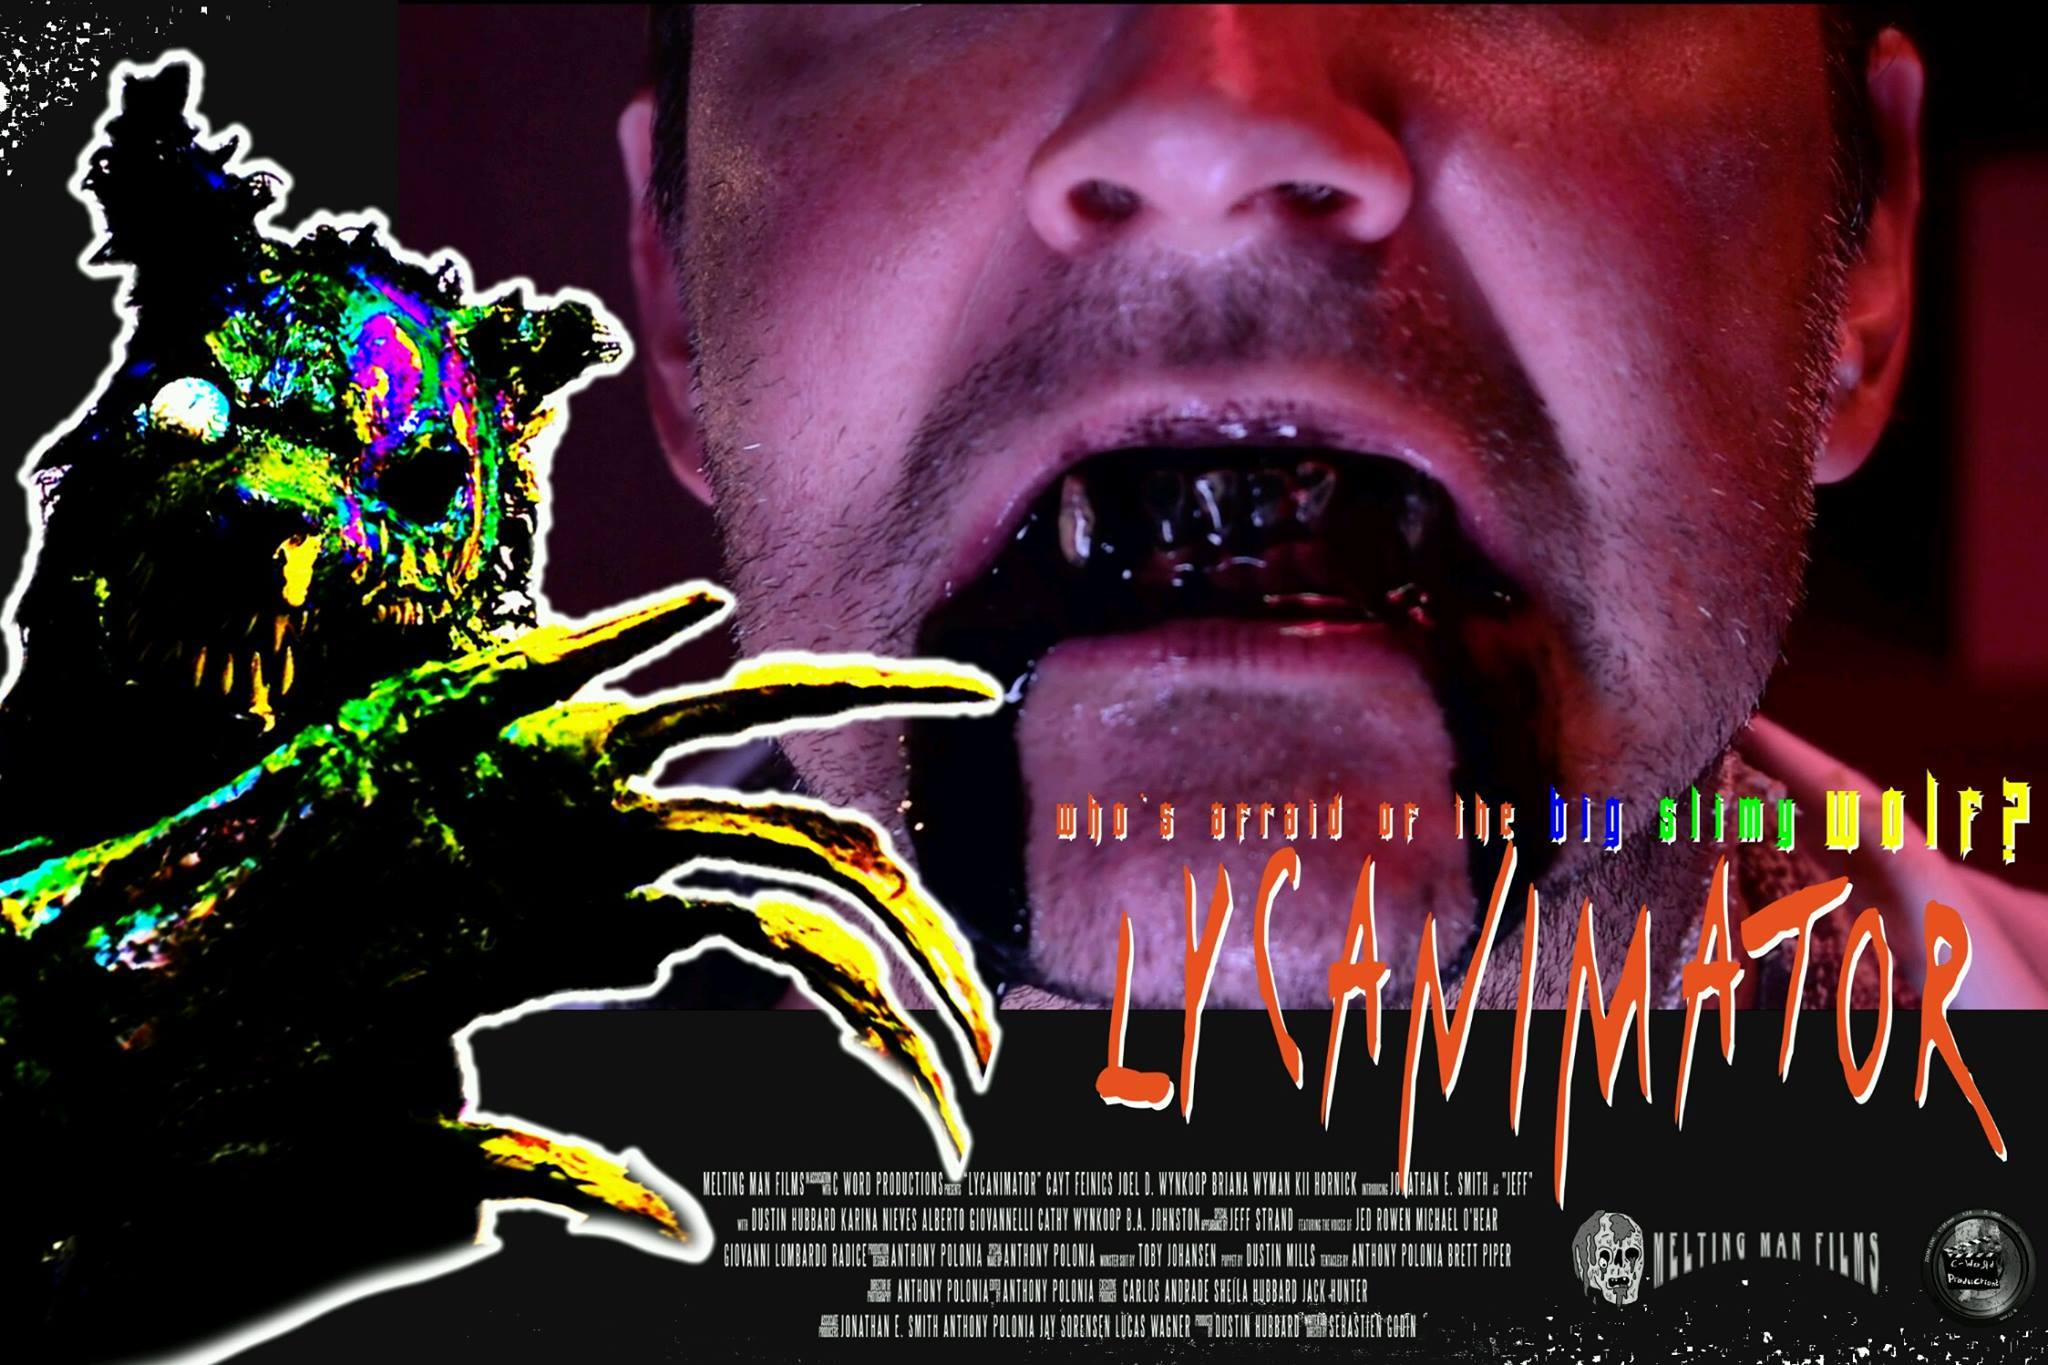 lycanimator theatercard 2 - Exclusive Lobby Cards From the Upcoming Creature Feature Lycanimator